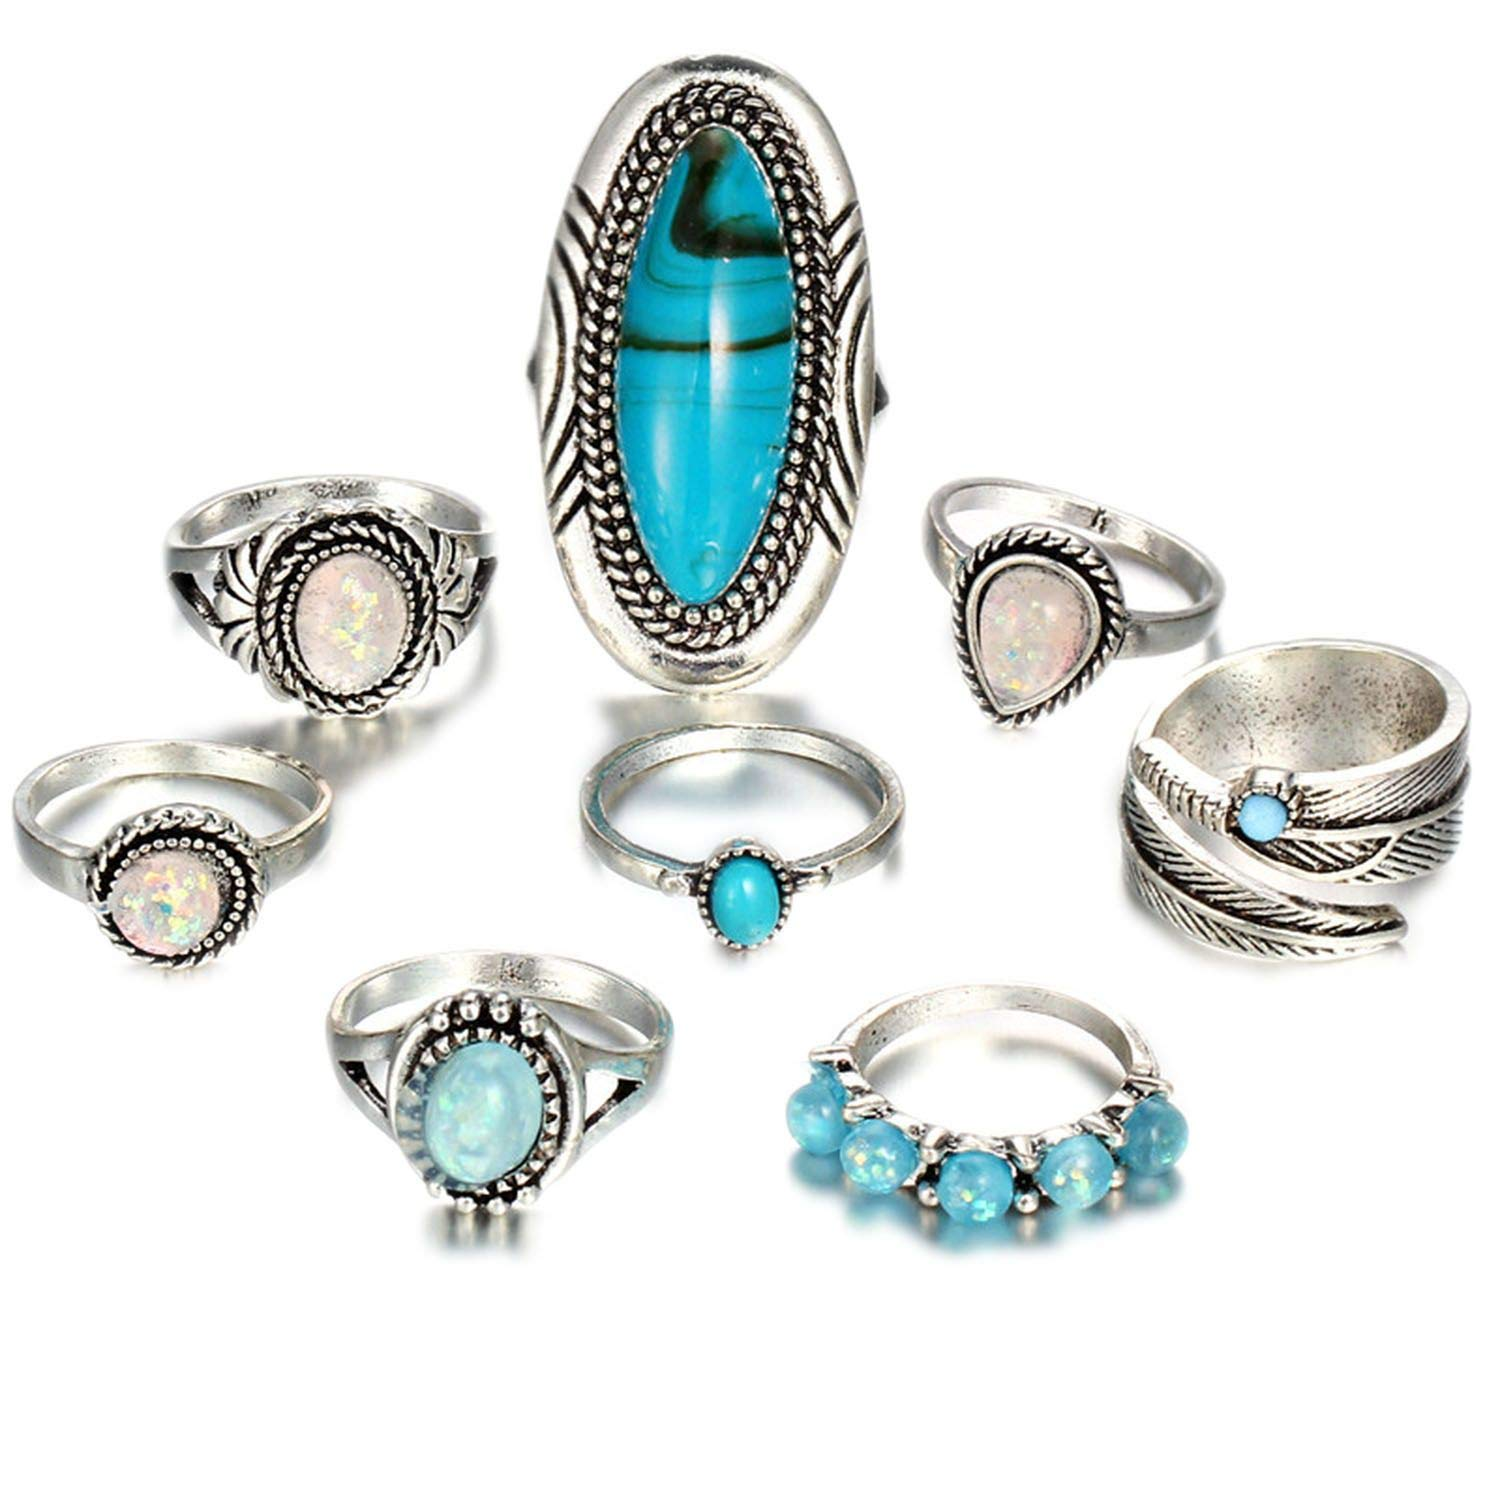 ihuoshang Vintage Geometric Stone Opal Rings Set for Woman Bohemian Antique Silver Knuckle Rings Party Jewelry